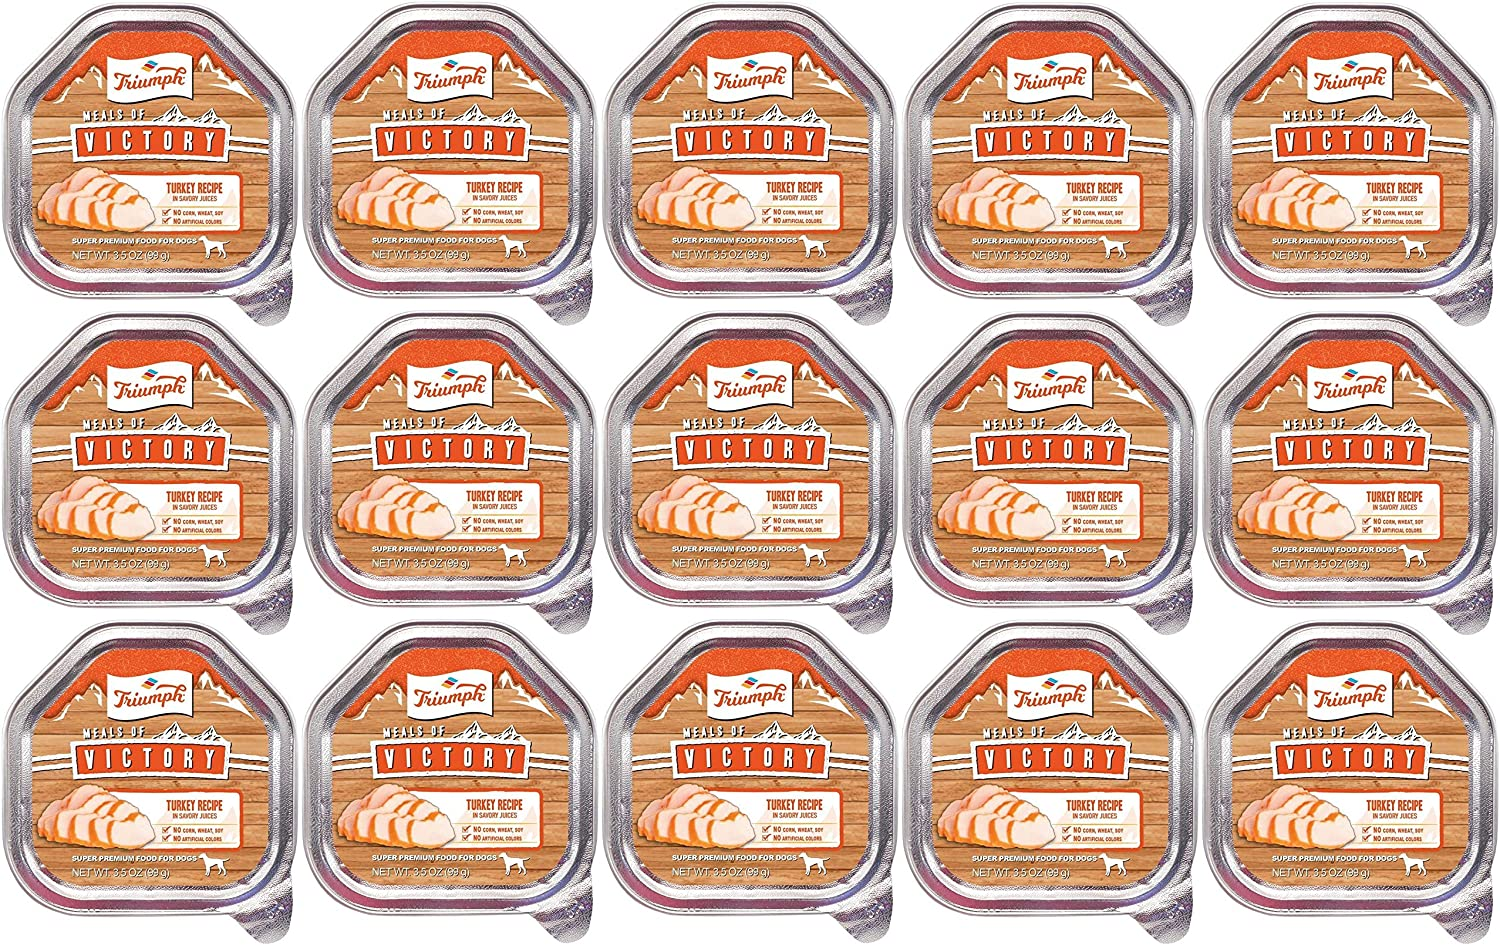 Triumph 15 Pack of Meals of Victory Turkey Recipe Wet Dog Food, 3.5 Ounces Per Cup